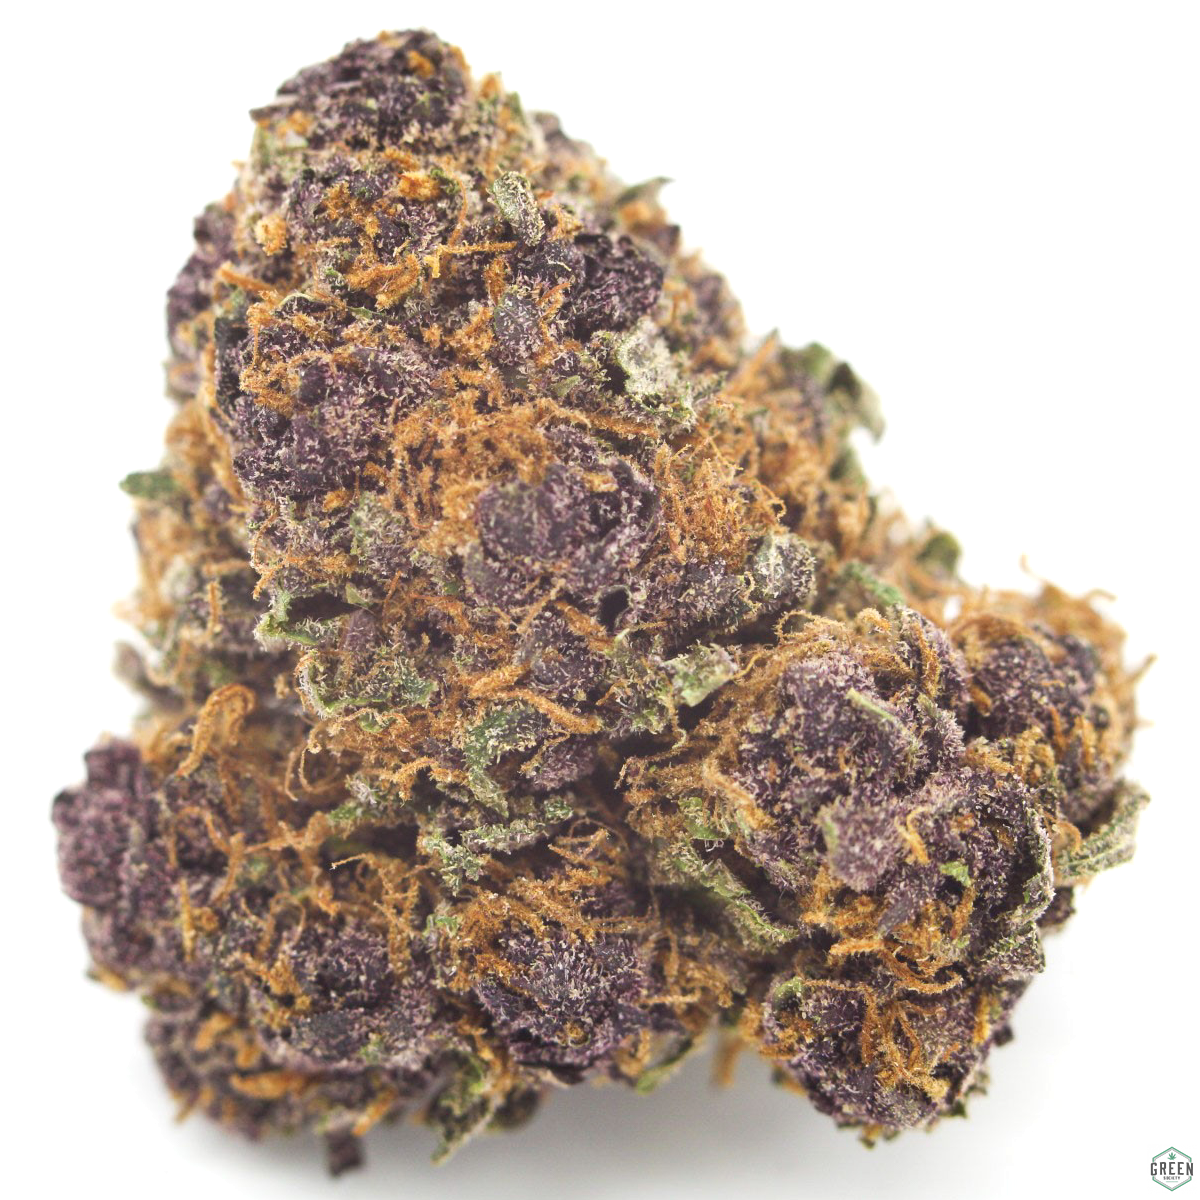 Grizzly Purple Kush by Green Society - Image © 2019 Green Society. All Rights Reserved.